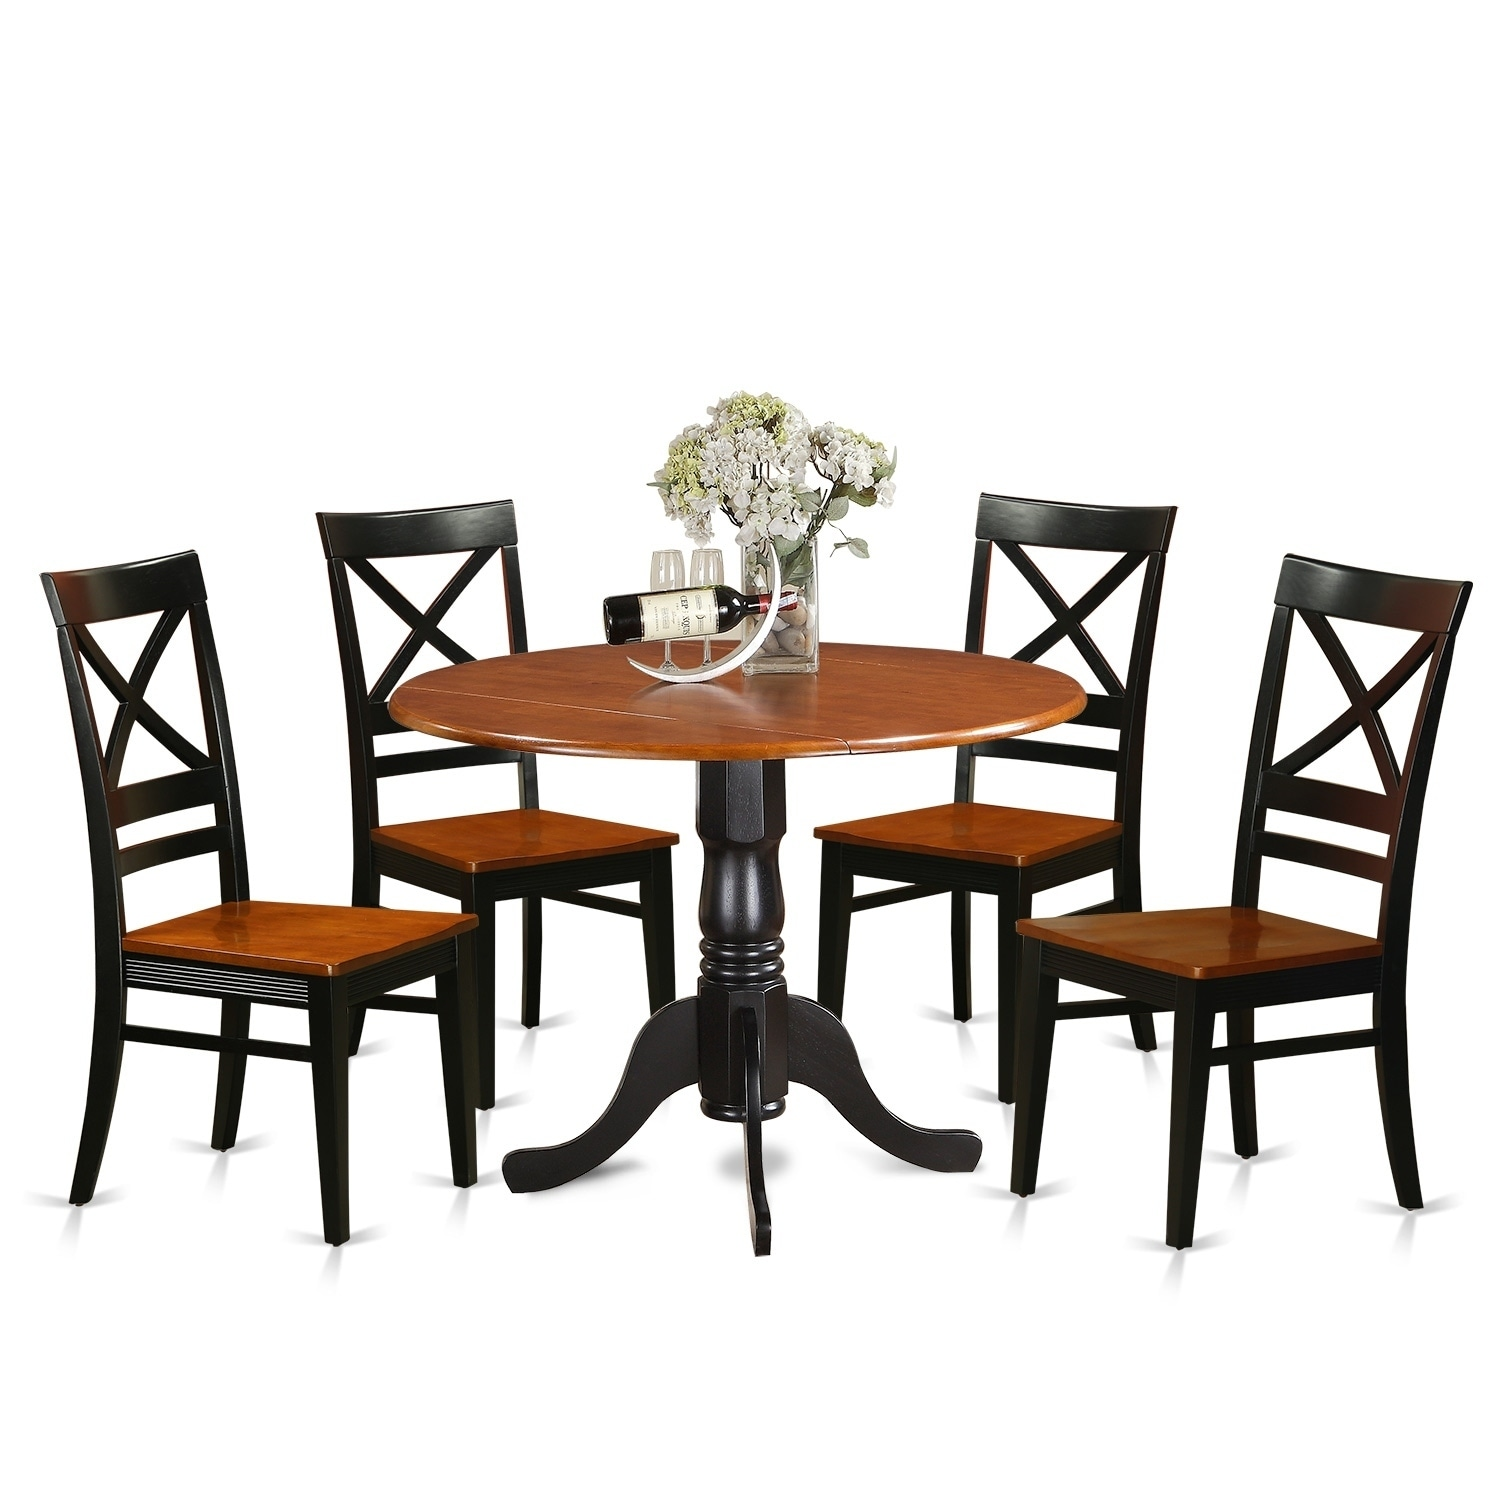 East West Furniture 5 Piece Dining Table and 4 Wooden Kitchen Chairs ...